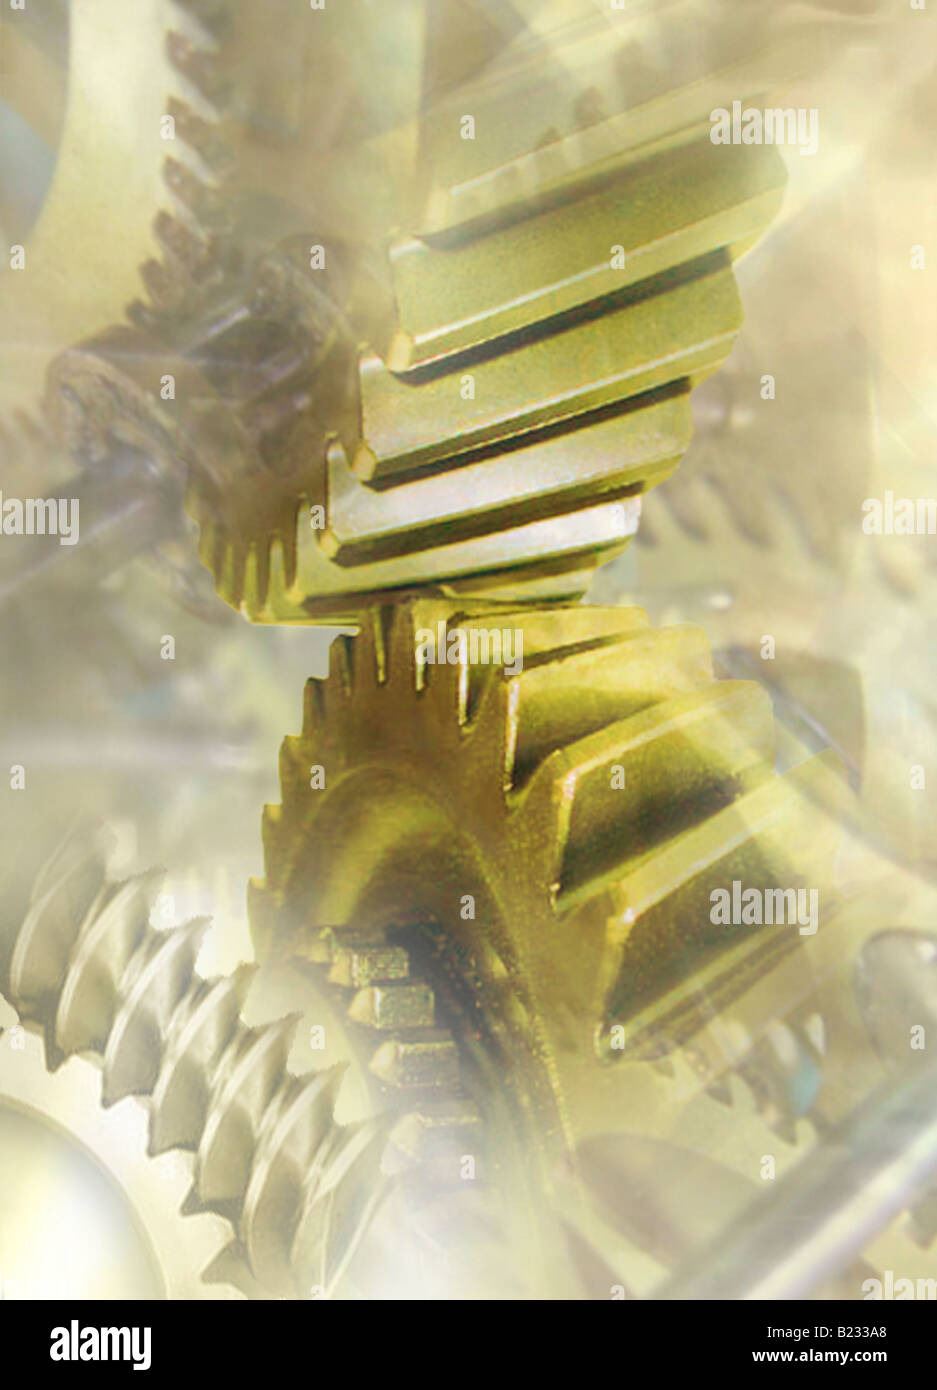 Daily Grind This image is a montage of gears - Stock Image